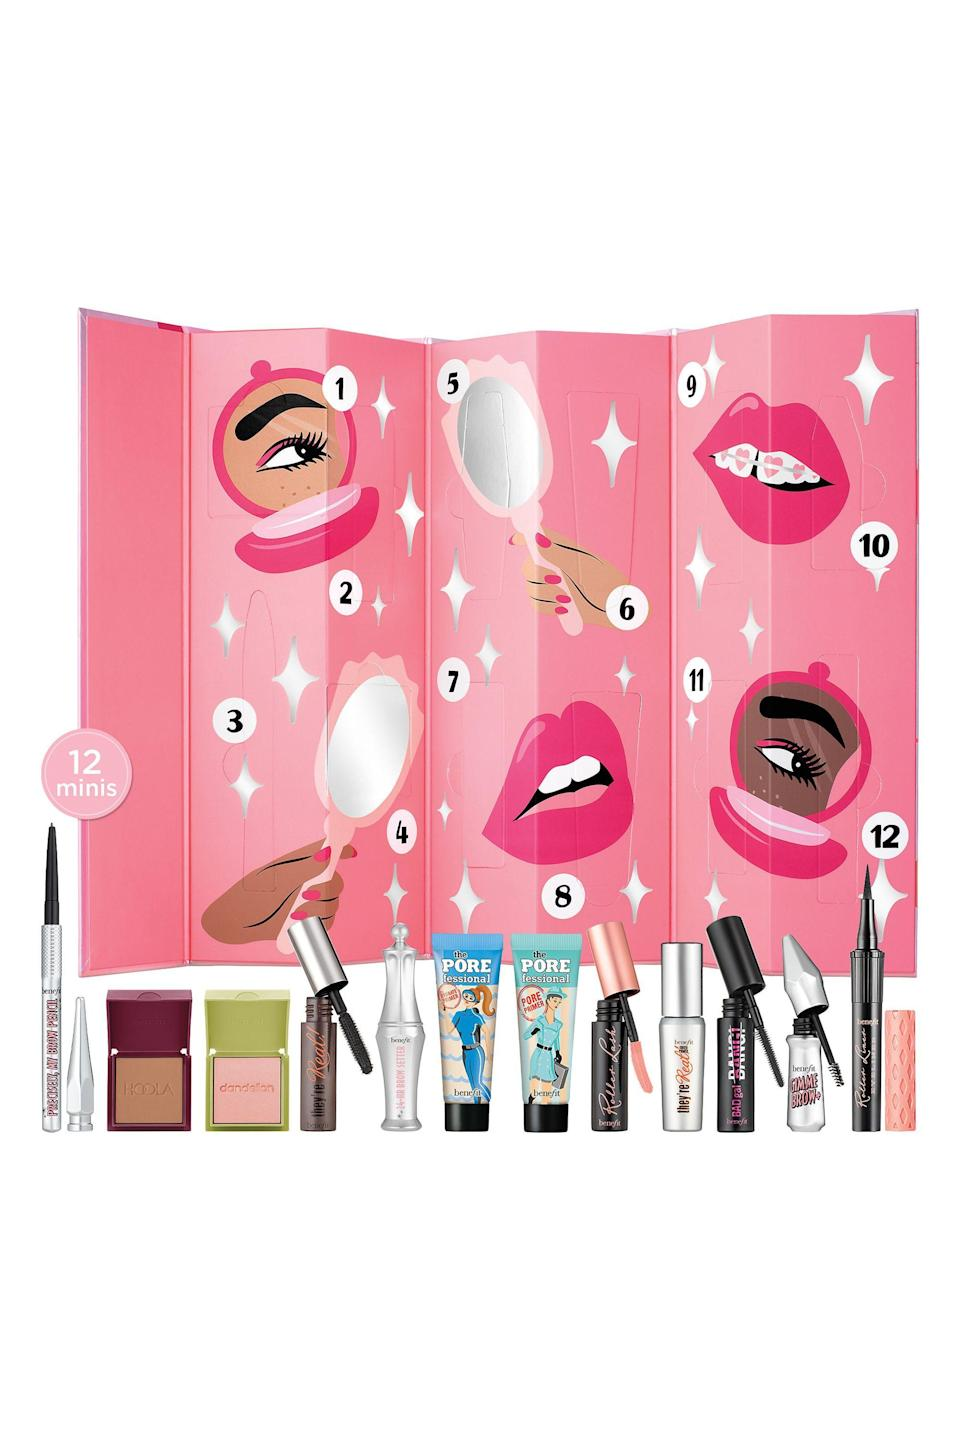 """<p><strong>Benefit Cosmetics</strong></p><p>sephora.com</p><p><strong>$65.00</strong></p><p><a href=""""https://go.redirectingat.com?id=74968X1596630&url=https%3A%2F%2Fwww.sephora.com%2Fproduct%2Fbenefit-cosmetics-shake-your-beauty-advent-calendar-P463804&sref=https%3A%2F%2Fwww.elle.com%2Fbeauty%2Fg34346227%2Fbest-makeup-beauty-advent-calendars%2F"""" rel=""""nofollow noopener"""" target=""""_blank"""" data-ylk=""""slk:Shop Now"""" class=""""link rapid-noclick-resp"""">Shop Now</a></p>"""